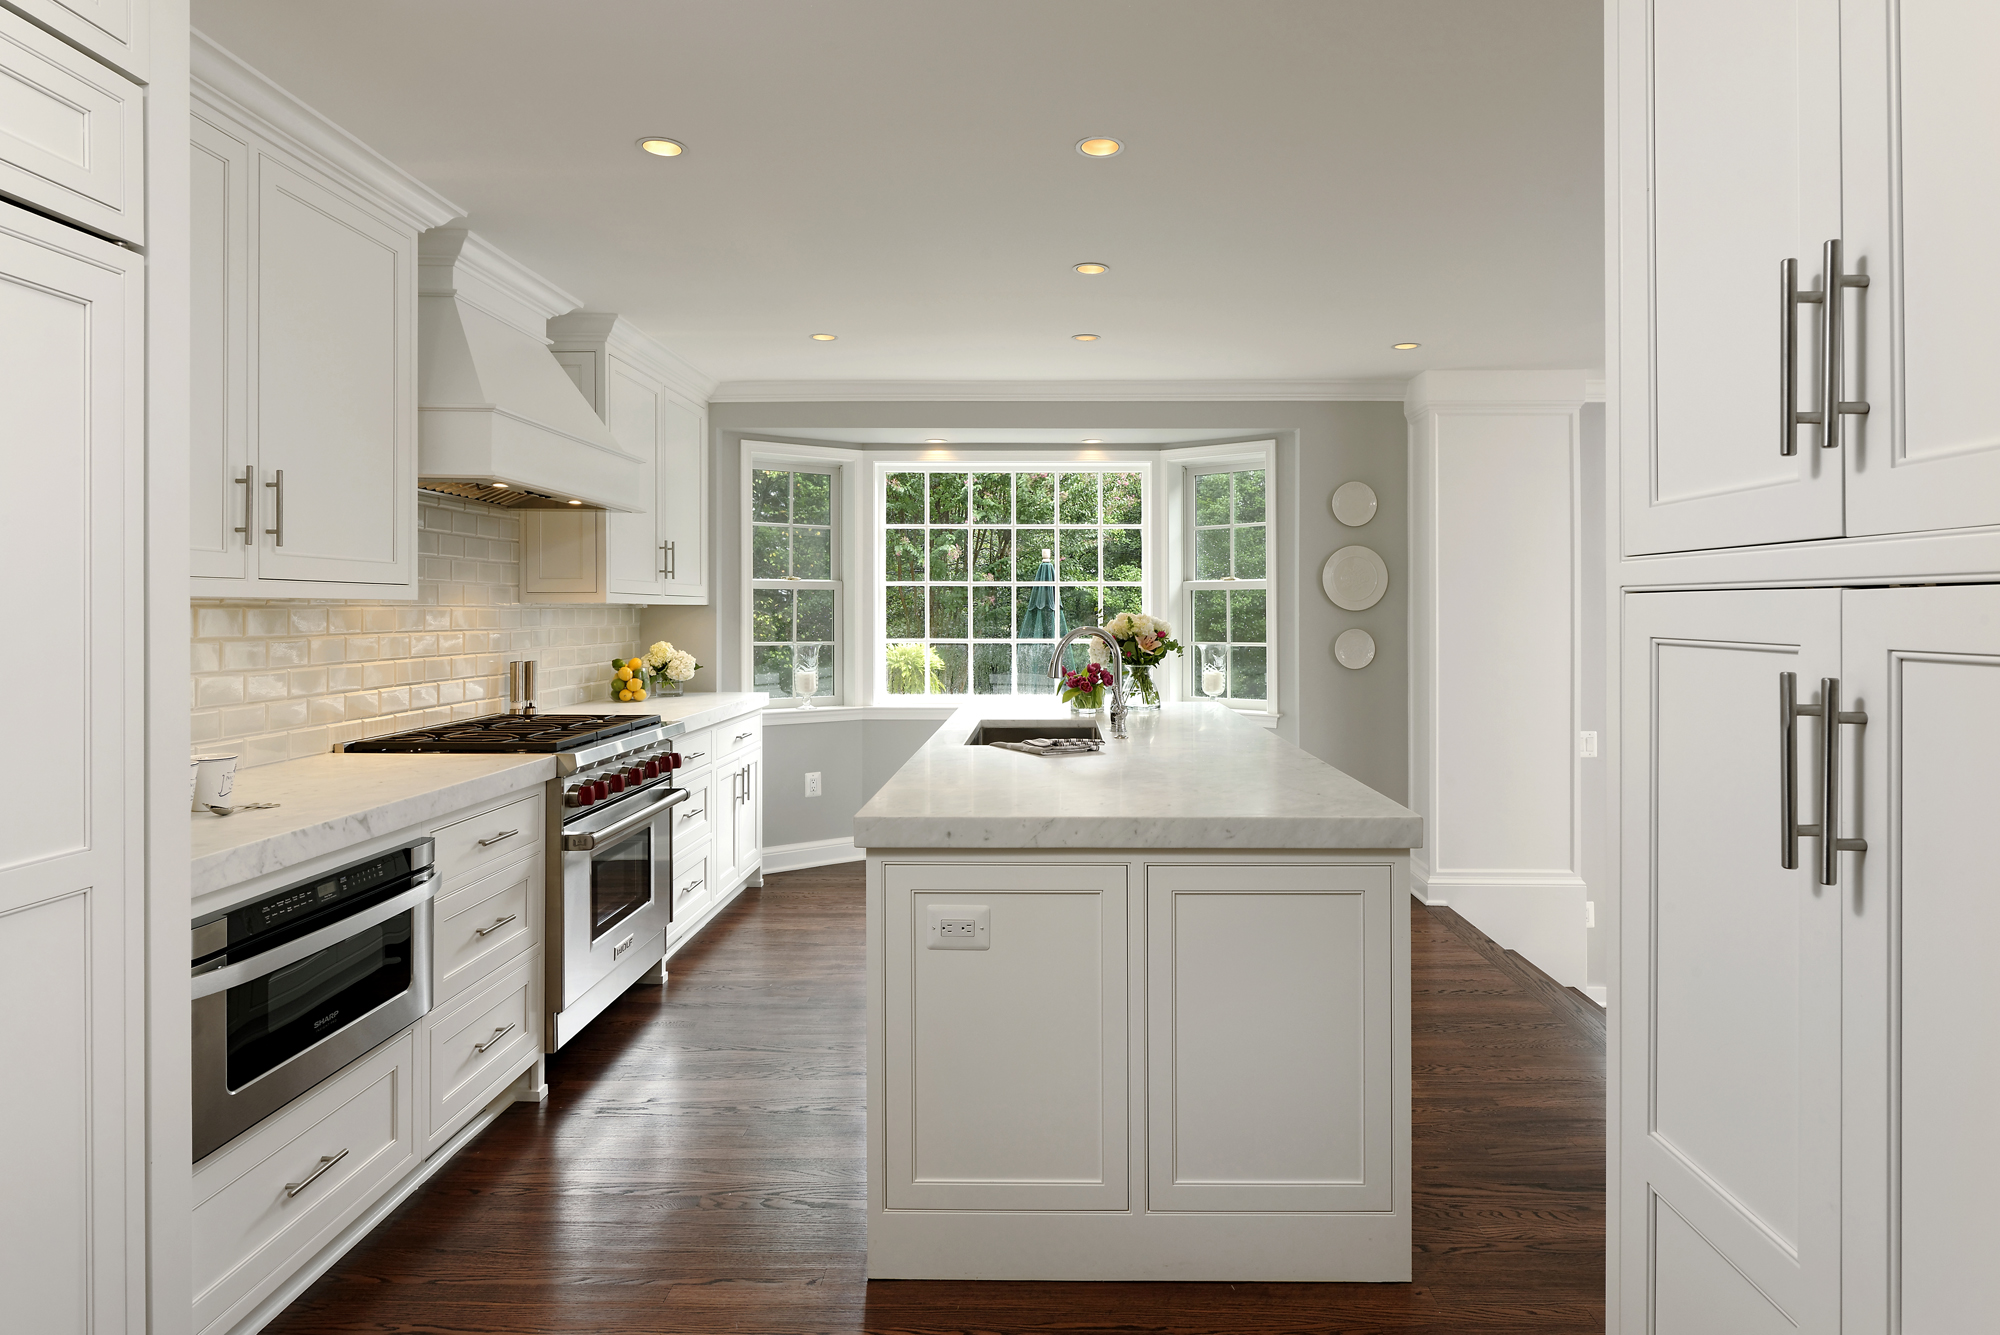 kitchen design bethesda. bethesda md traditional kitchen design s